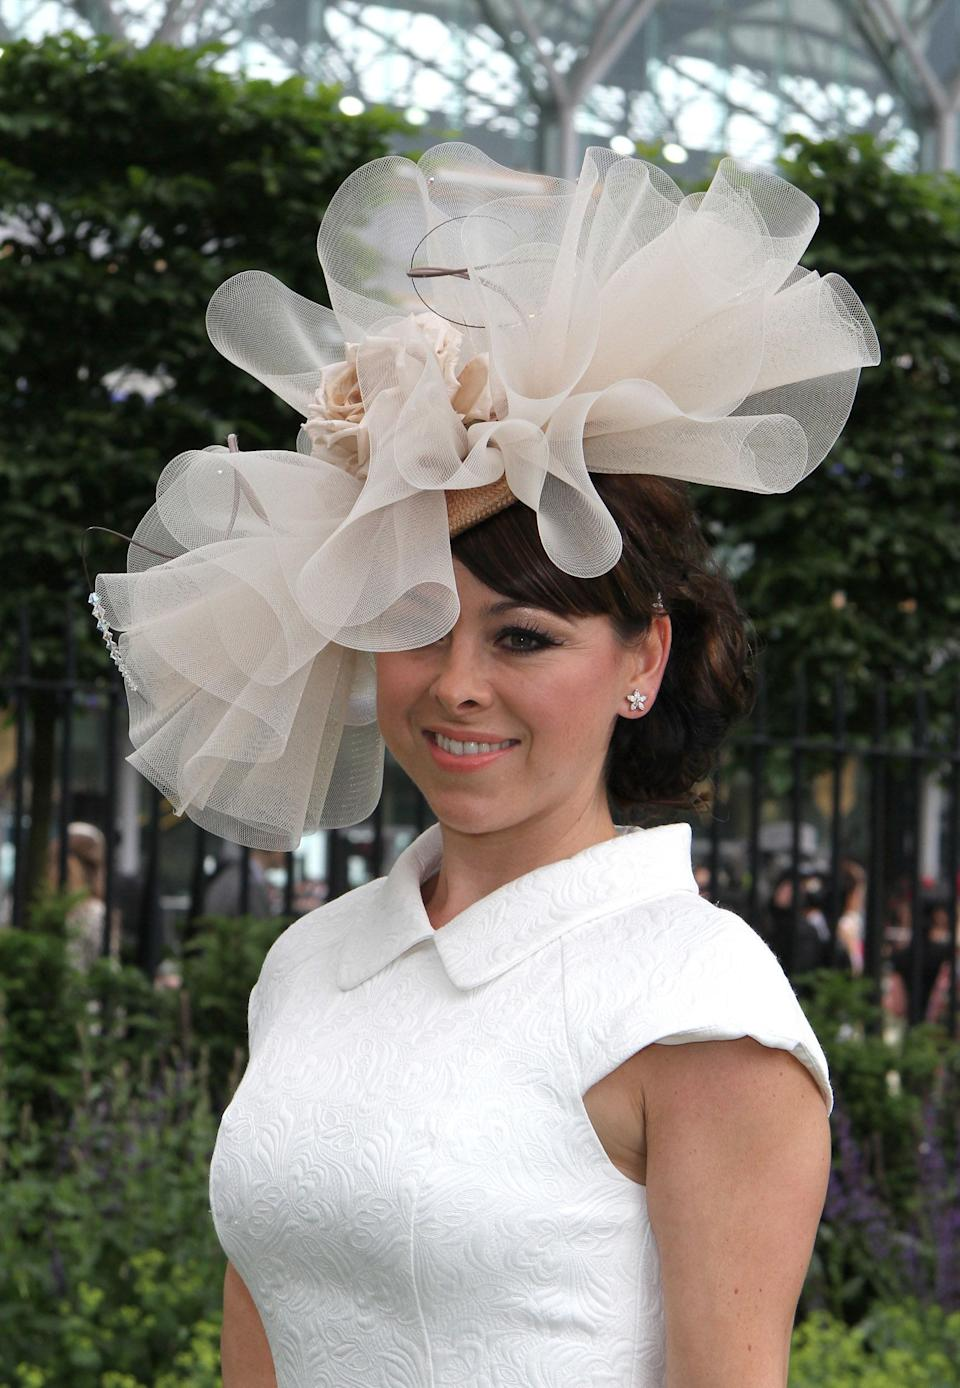 THAT FASCINATOR.<br /><br />In non-fascinator news, Lisa Scott-Lee was one of the stars to take place in the ill-fated Sky series CelebAir, later lacing up her ice skates to appear in Dancing On Ice.<br /><br />Her most notorious reality TV appearance, though, was in her own MTV series, Totally Scott-Lee' when she was filmed breaking down in tears when she learned her solo single had missed the top 20.<br /><br />Lisa also appeared as a housemate in a fictional, borderline-dystopian, series of Celebrity Big Brother, in the final episode of Ricky Gervais' comedy, Extras.